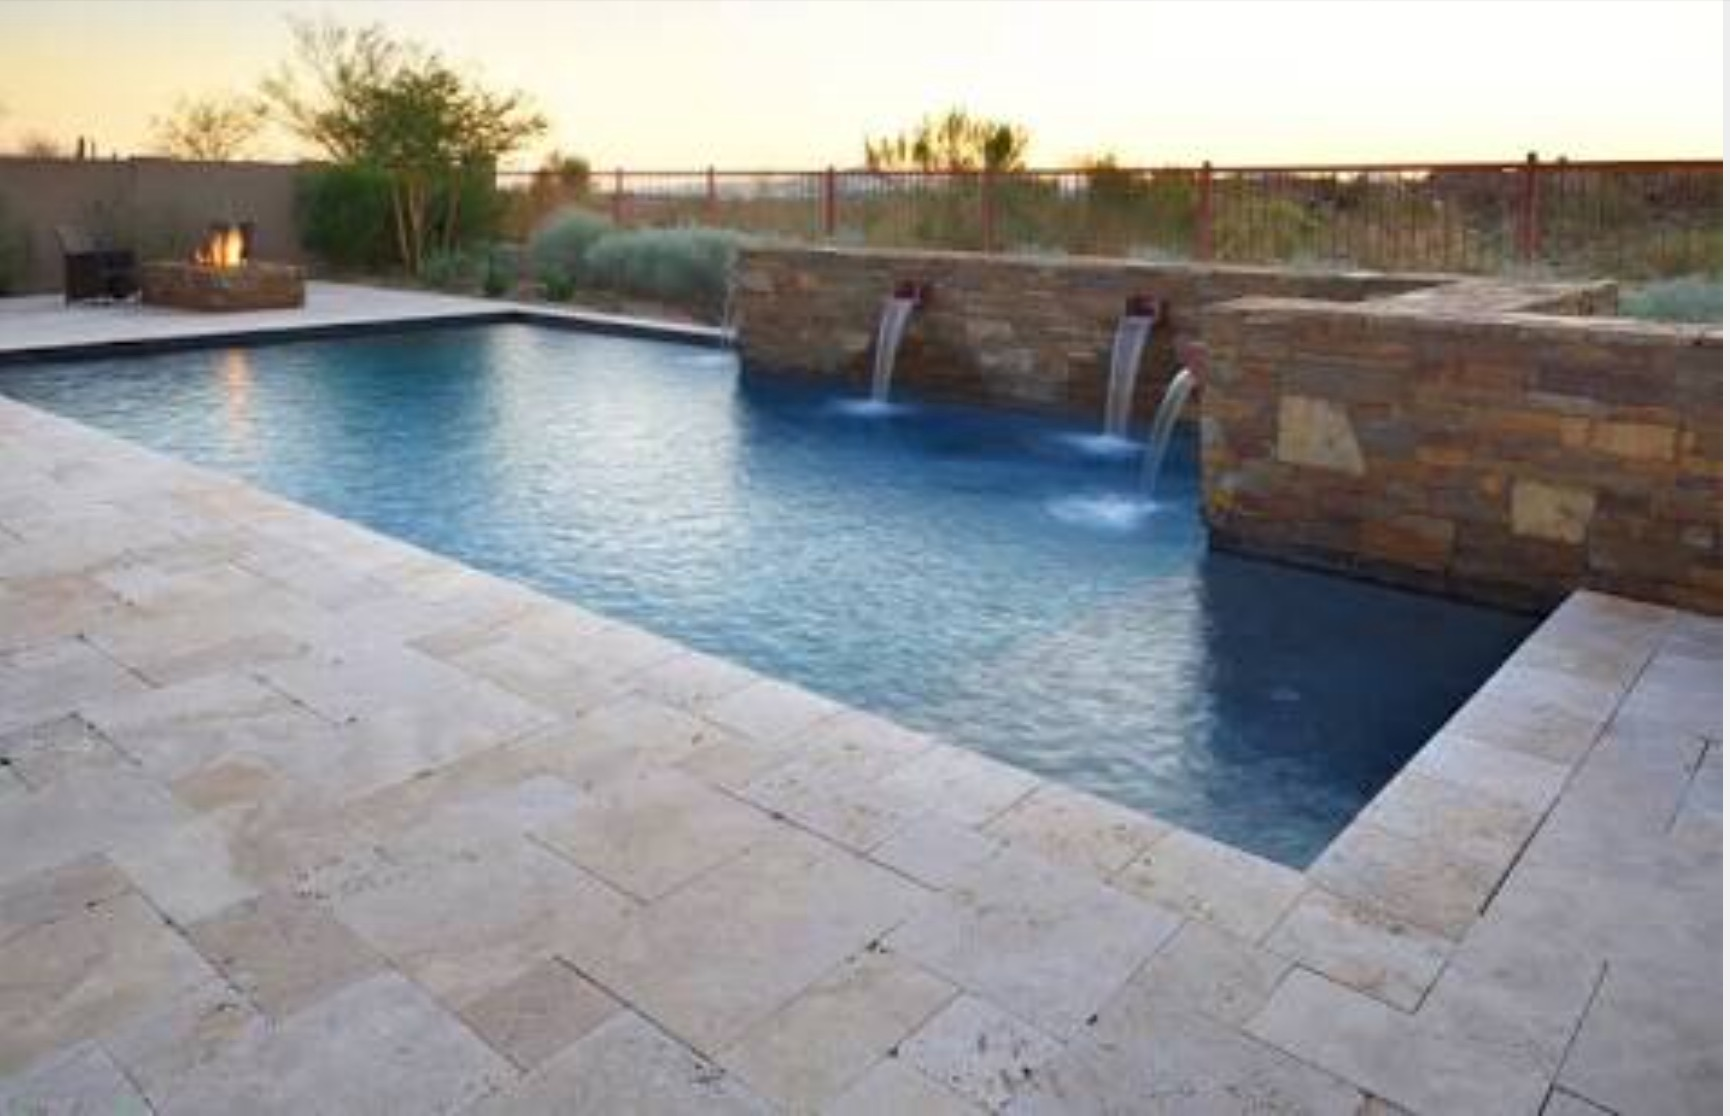 Travertine Pool Pavers Pool Coping Tiles Pavers  Melbourne Travertine Tiles & Pavers